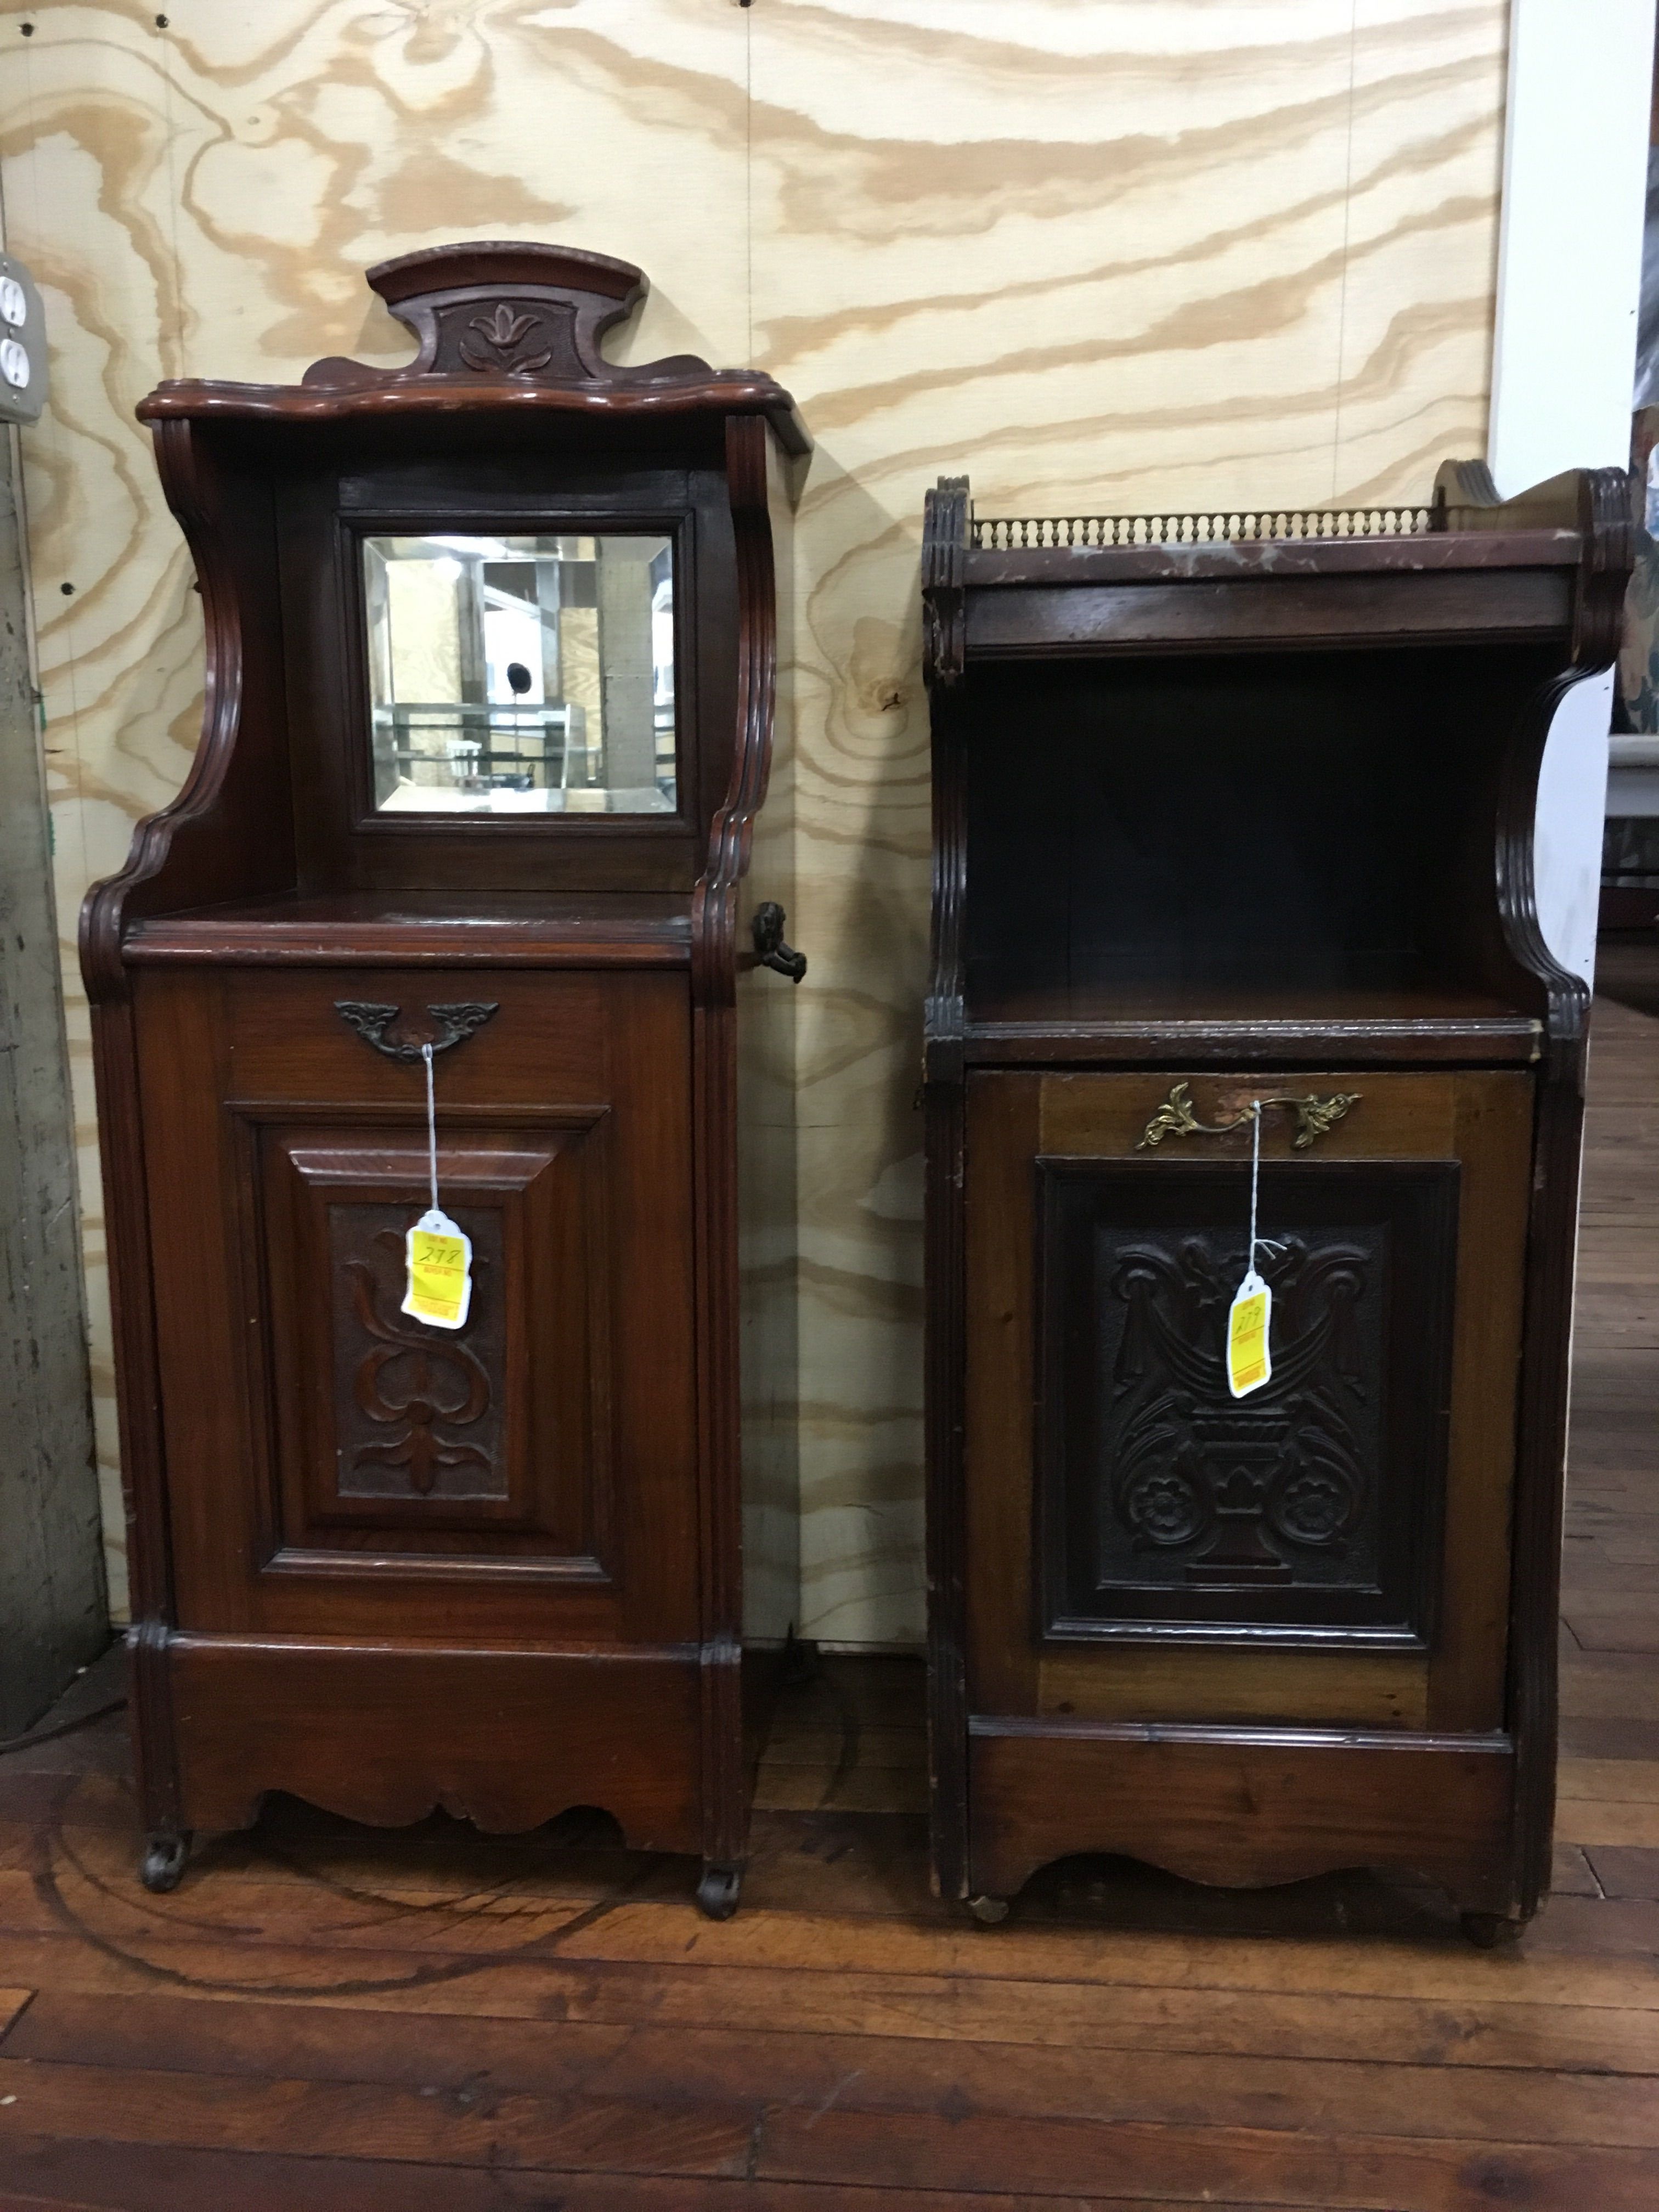 Secret Compartments Hidden In These Night Stands Made For A Warm Cozy Home  Back In The Come By Our Auction This Thursday To See More Antique Furniture!